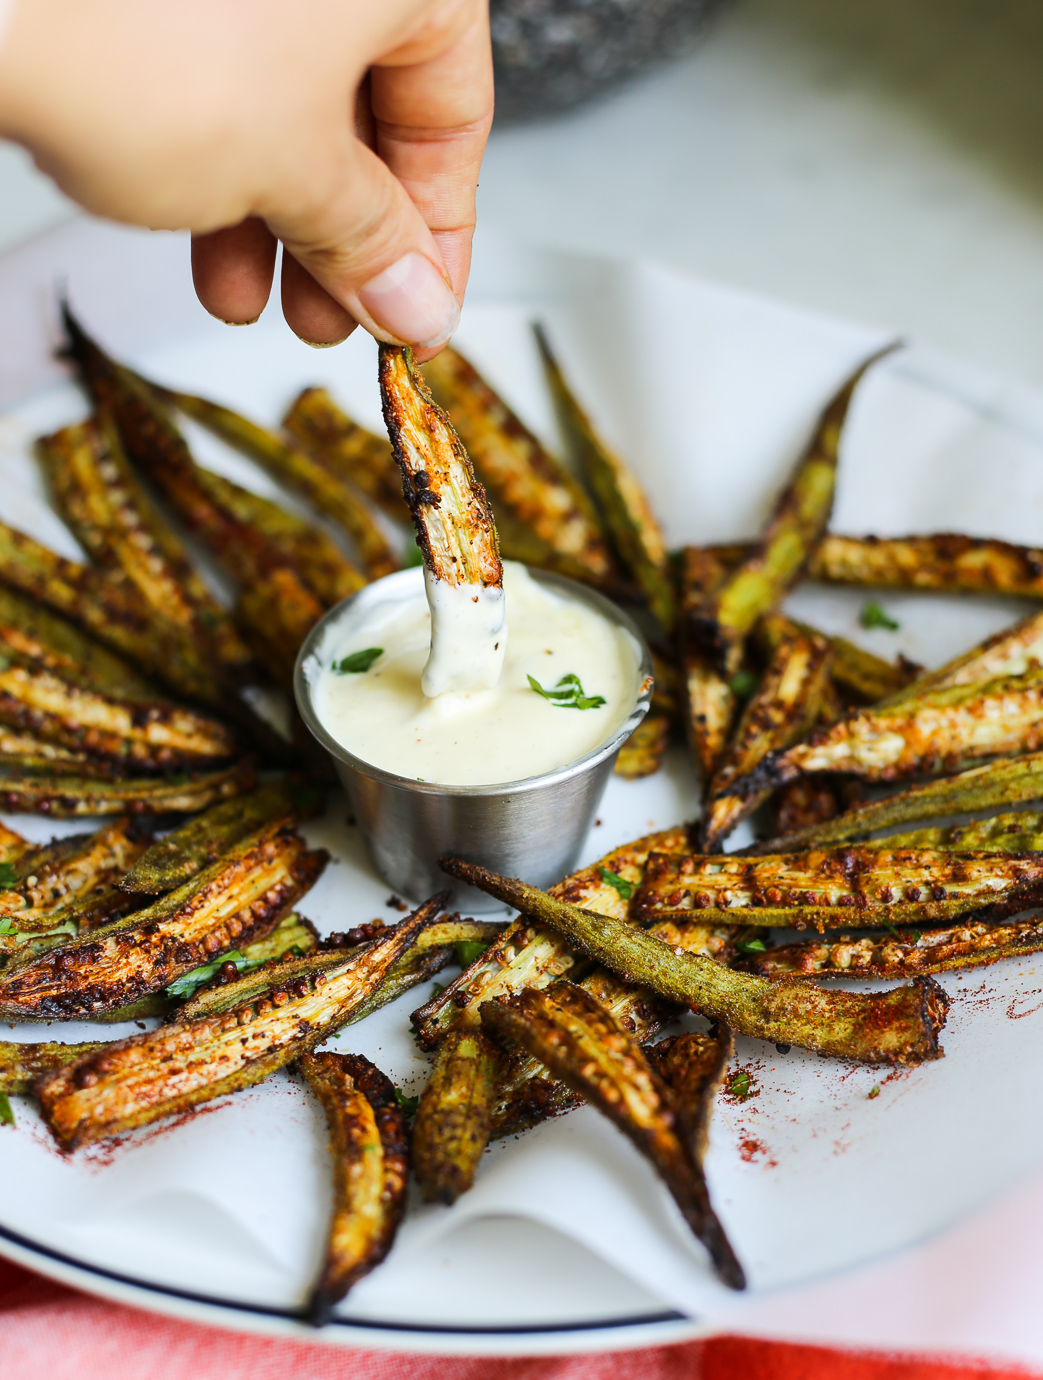 Cajun Oven-Roasted Okra Fries with Lemon-Garlic Aioli